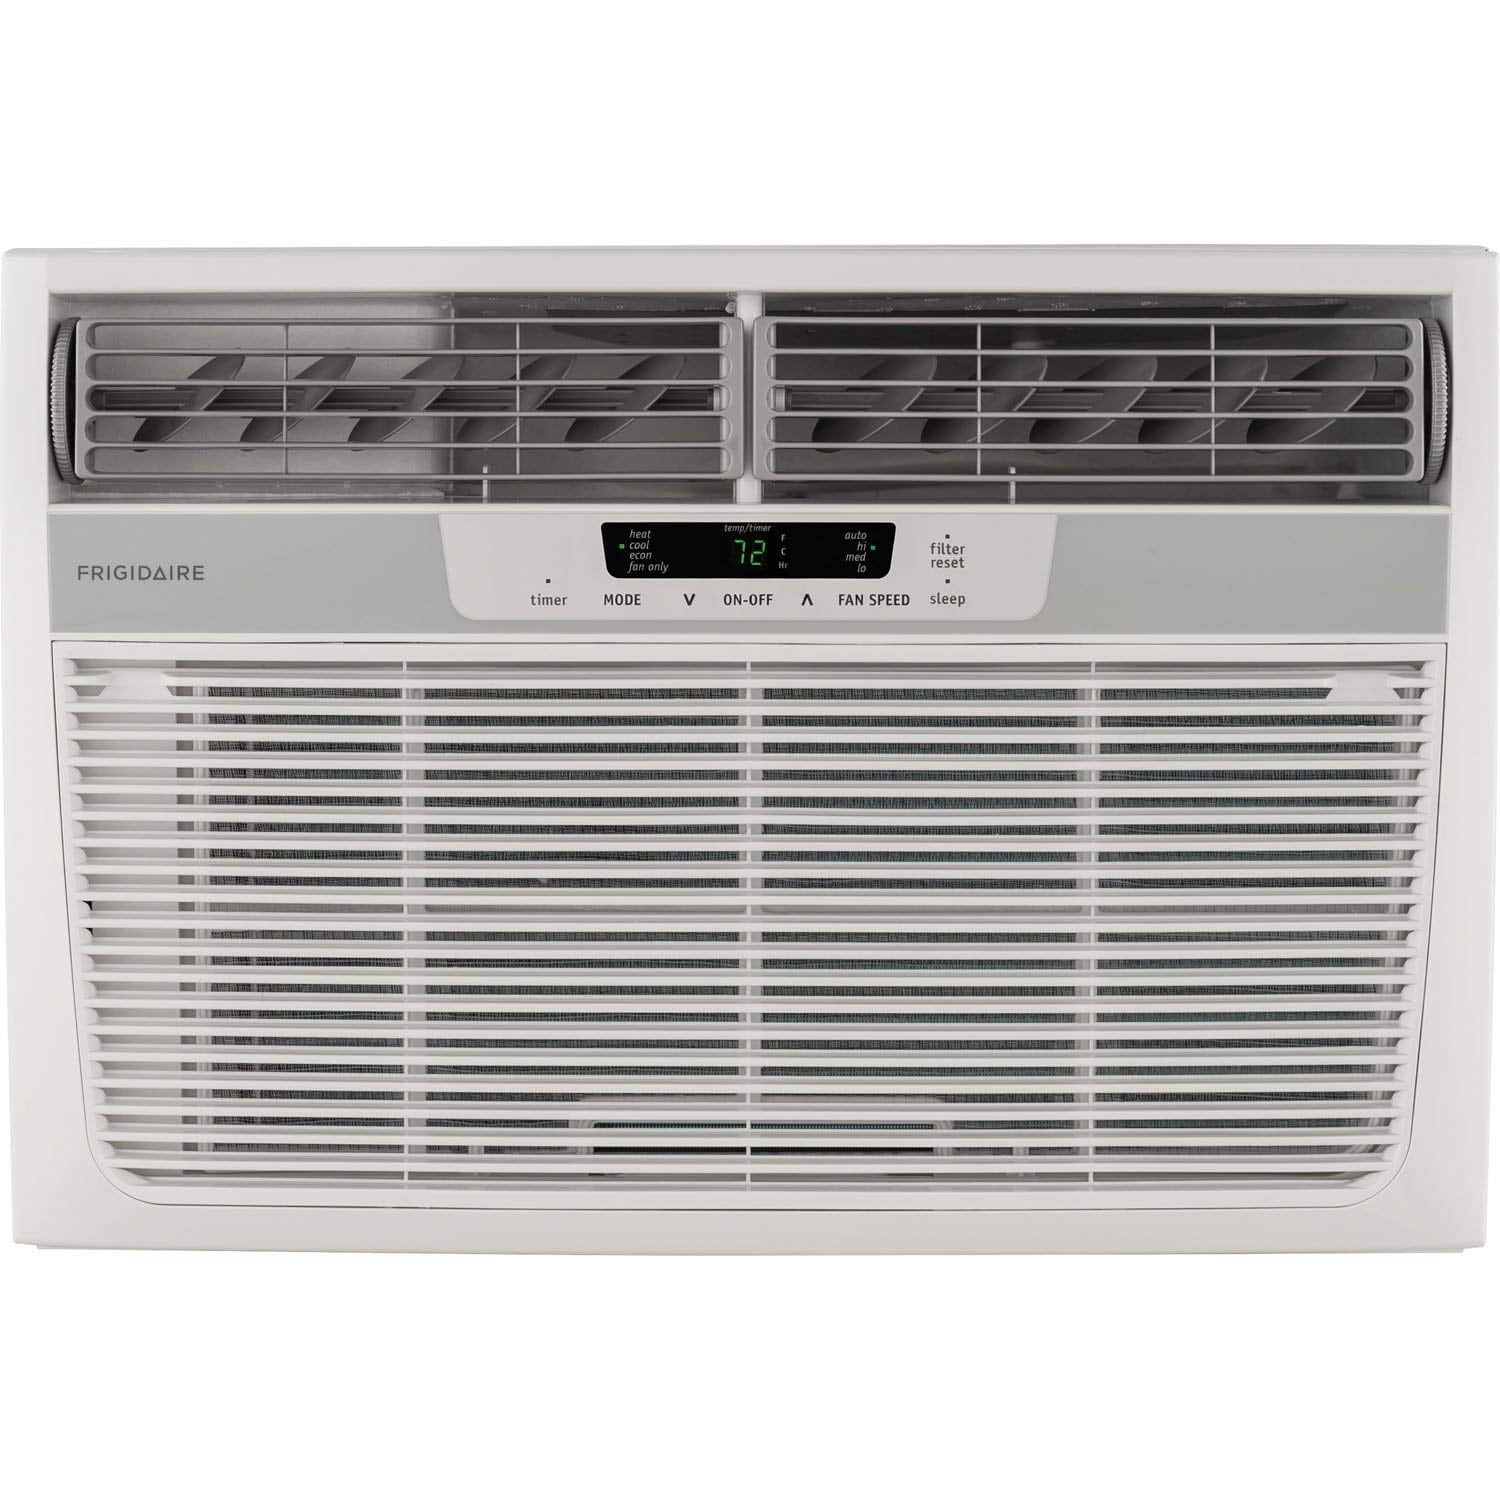 Frigidaire FFRH1222R2 Frigidaire Air Conditioner Compact Electronic With Remote